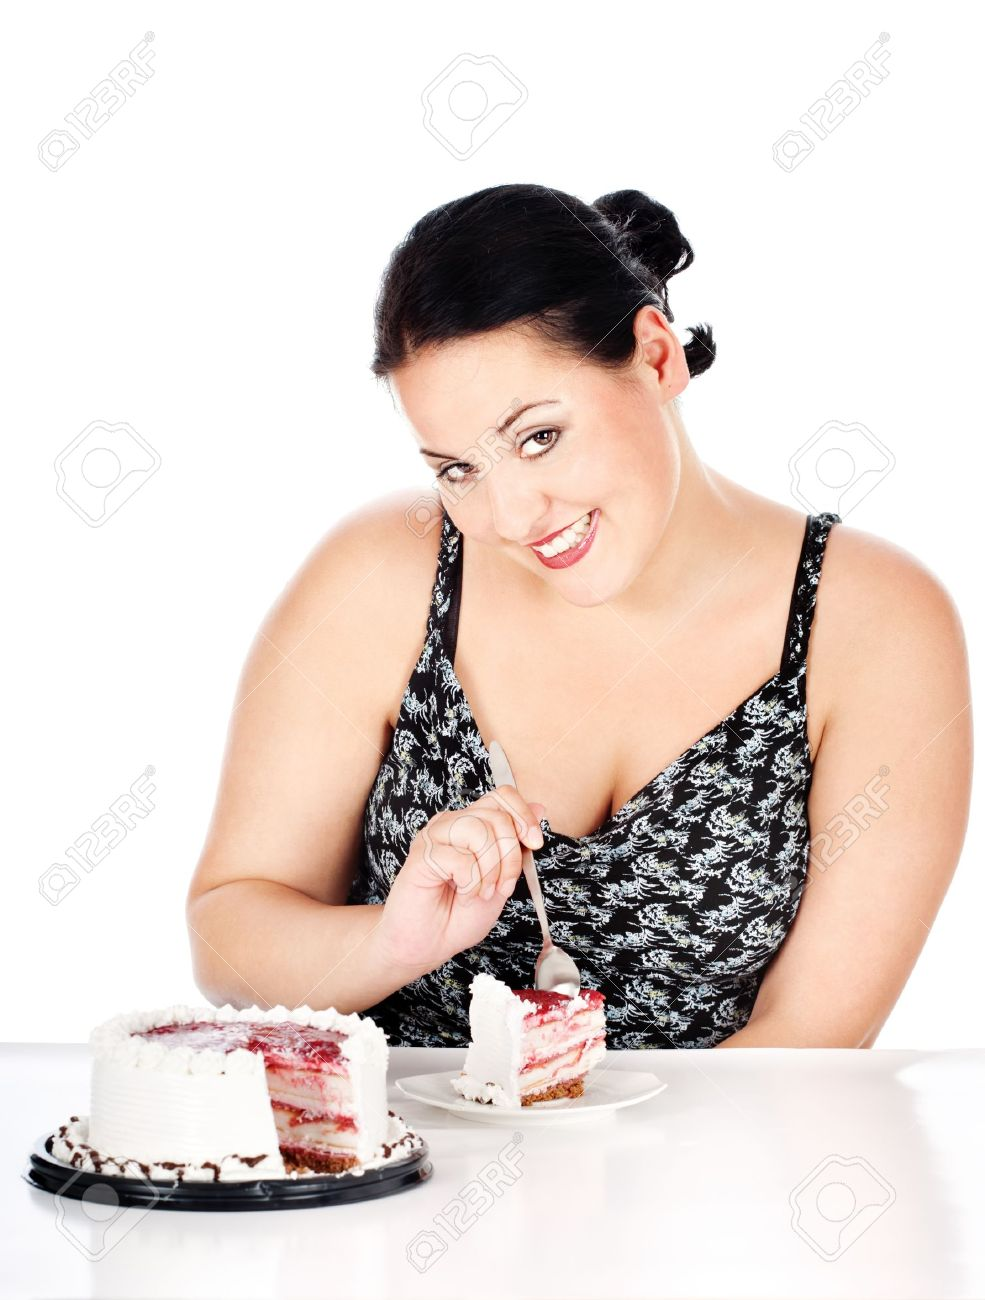 chubby woman eating slice of cake, isolated on white Stock Photo - 14880692